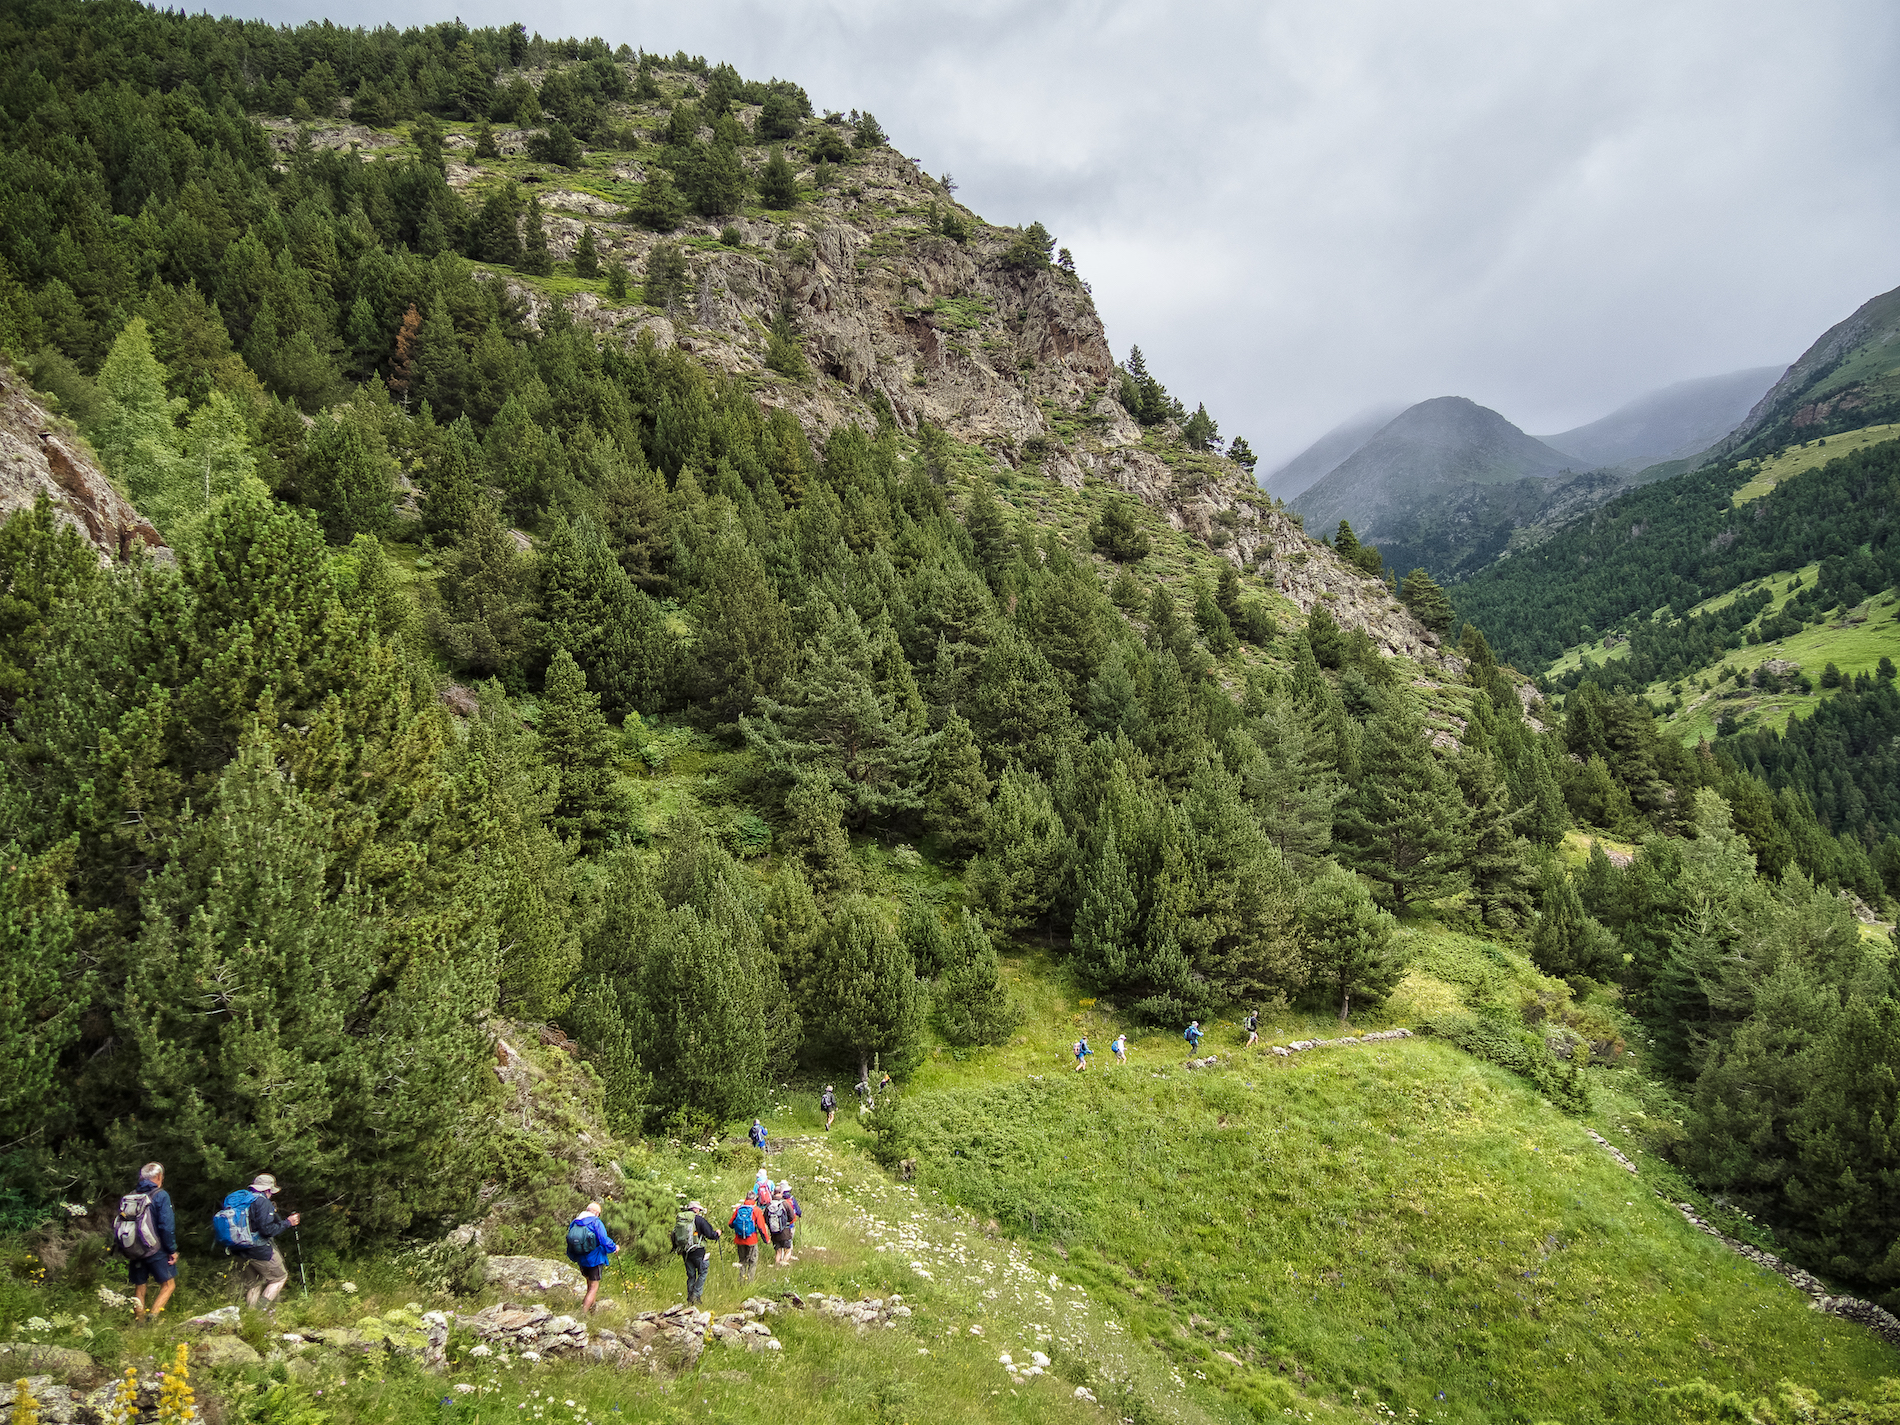 Andorra - Wedged in between France and Spain, Andorra offers some of the best ski slopes in the Pyrenees. But once the snow melts, there's outstanding walking, ranging from easy strolls to demanding day hikes, to be found.